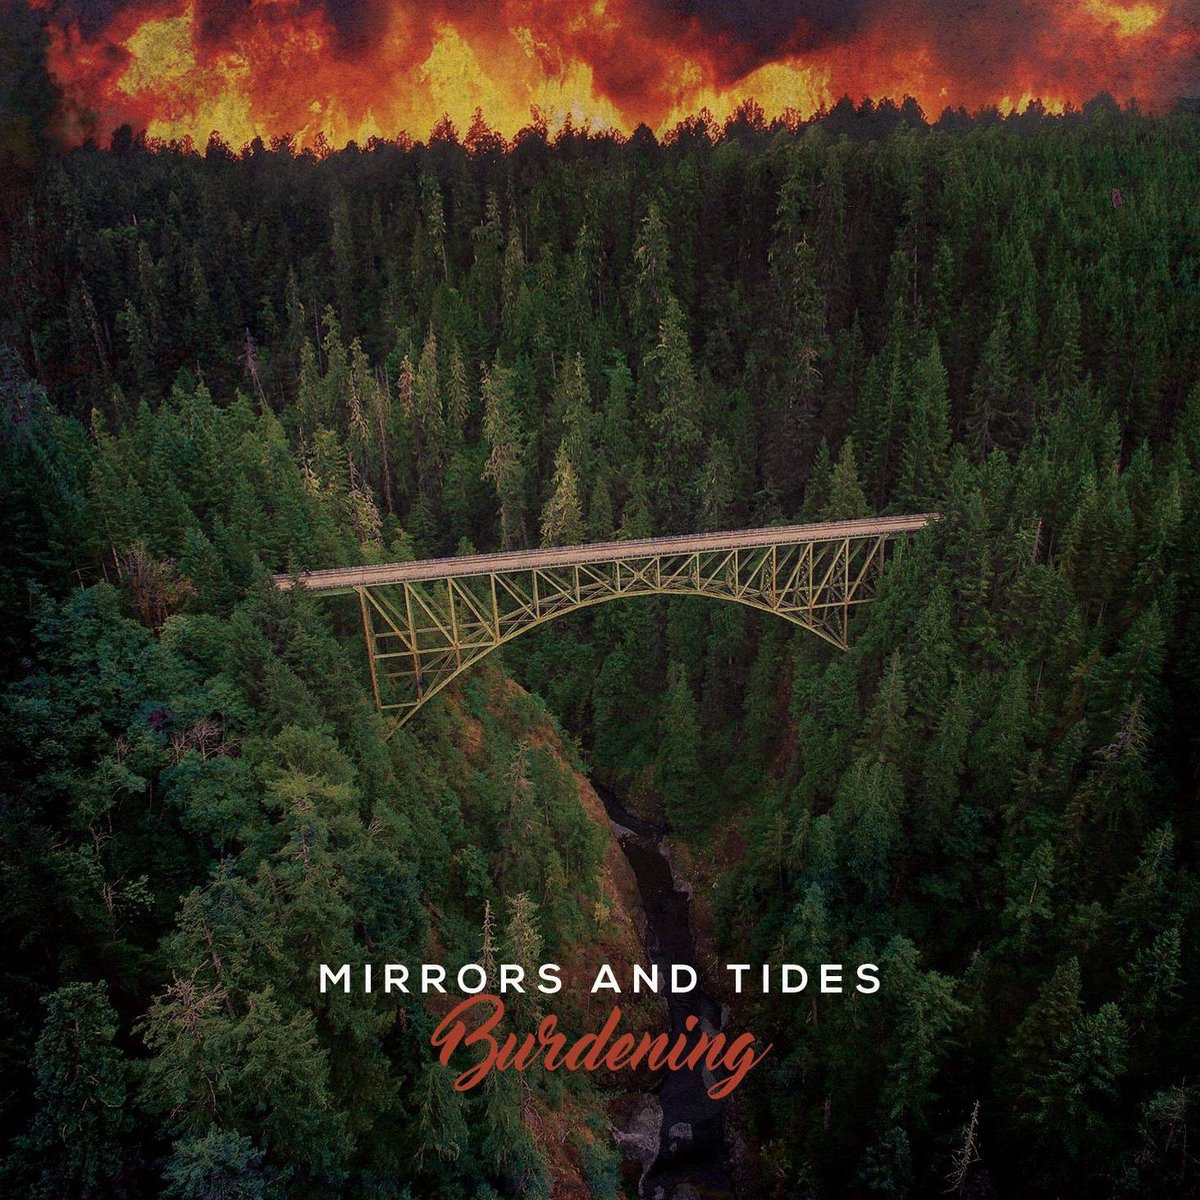 Mirrors And Tides - Burdening (2017)